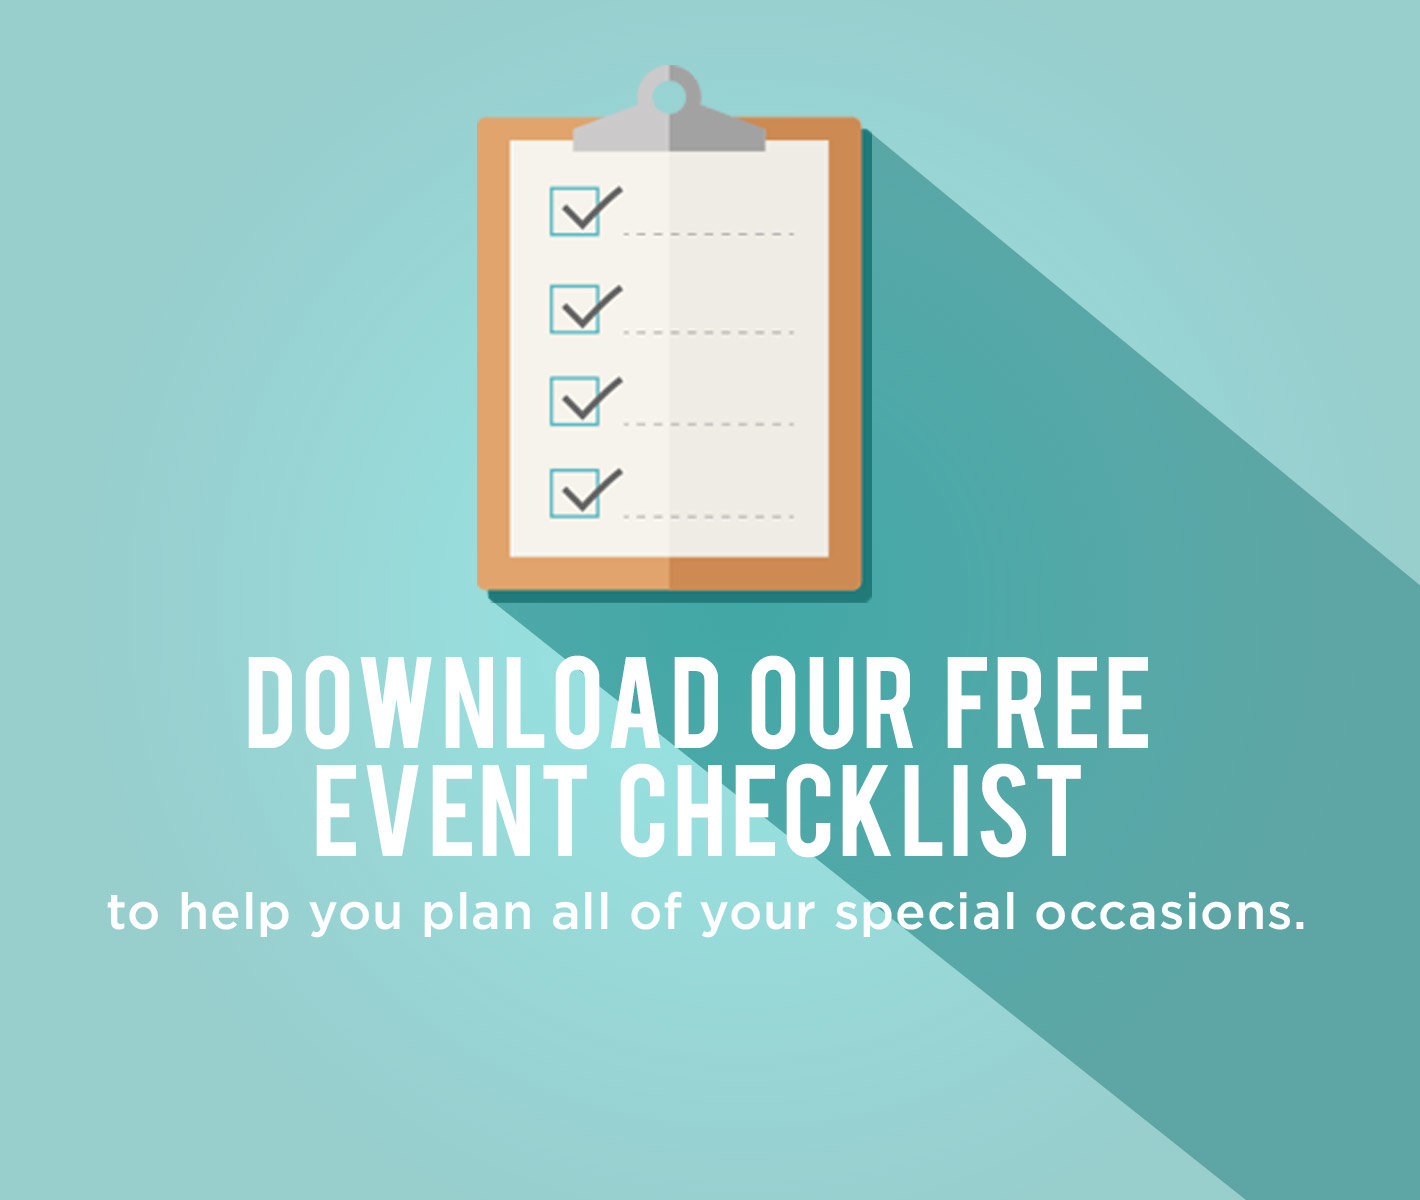 Download our event checklist.